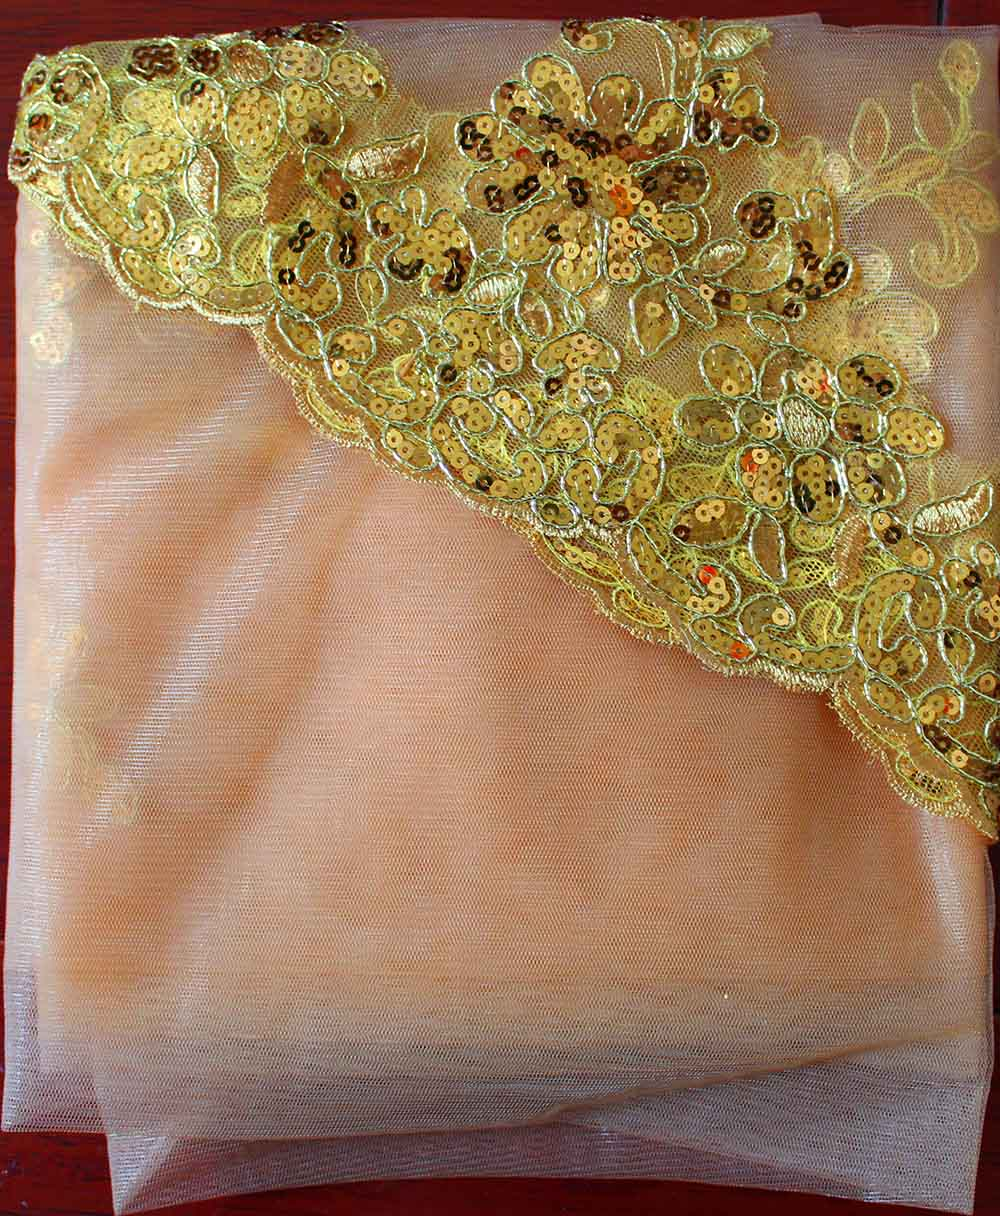 Bling Sequins Lace Gold Wedding Veil One Layer Short Colorful Bridal Veil with Comb Voile Mariage Wedding Accessories